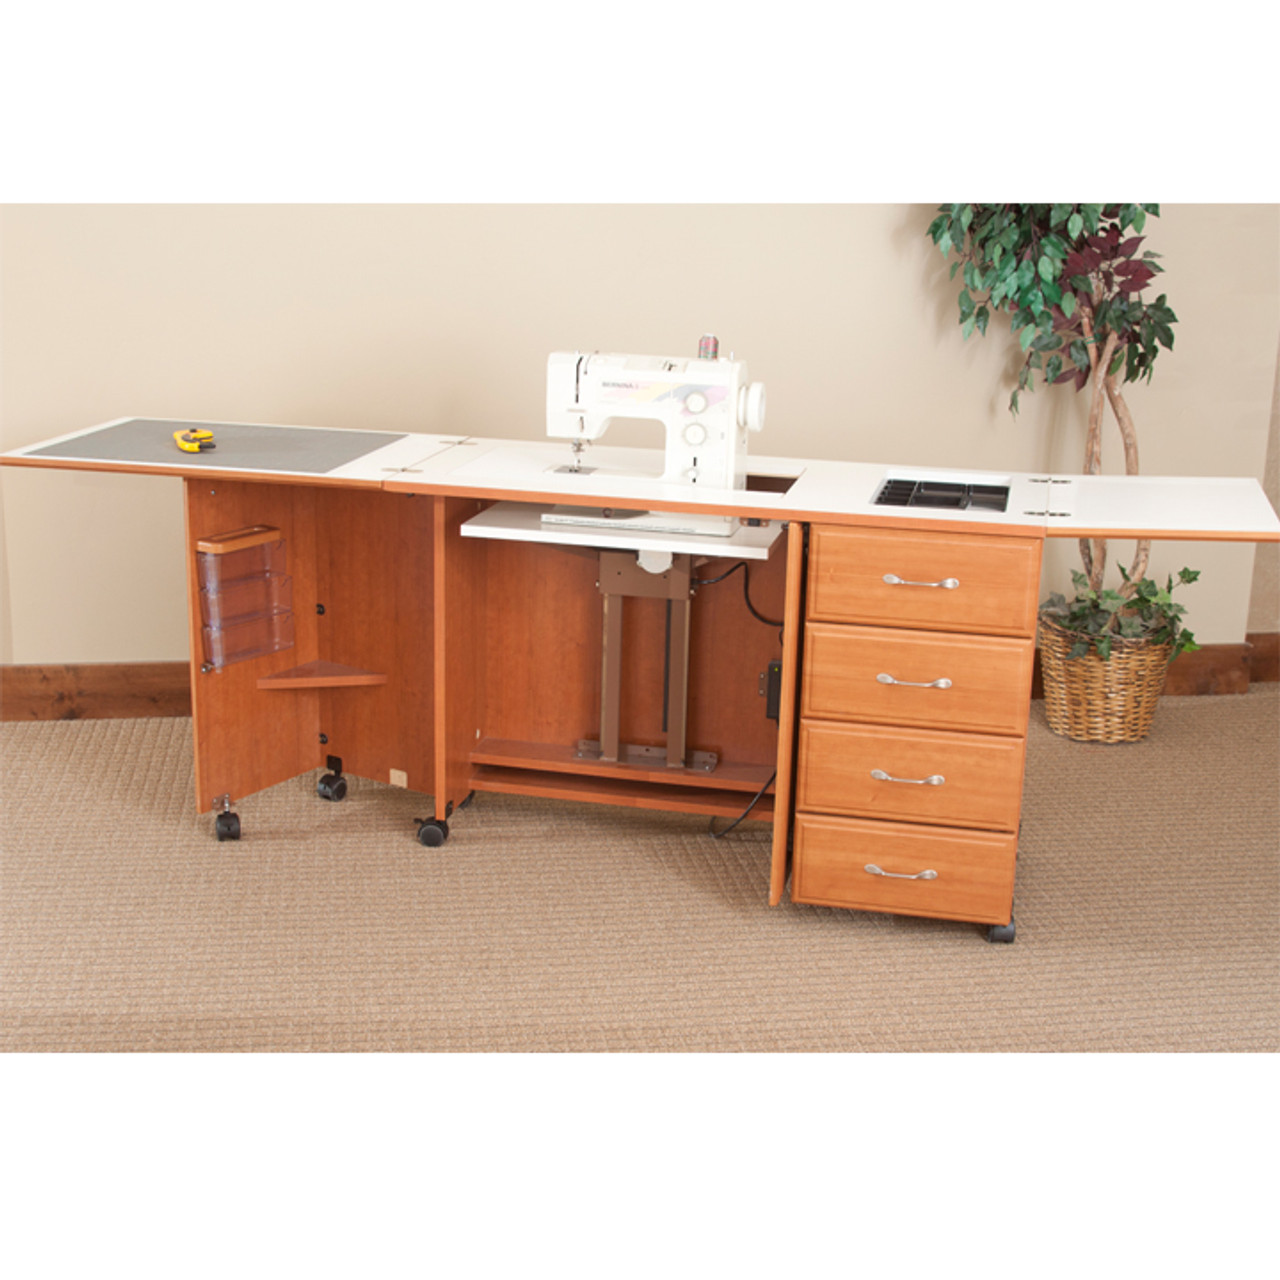 Fashion Sewing Cabinets 7600 Space Saver Sewing Cabinet ...